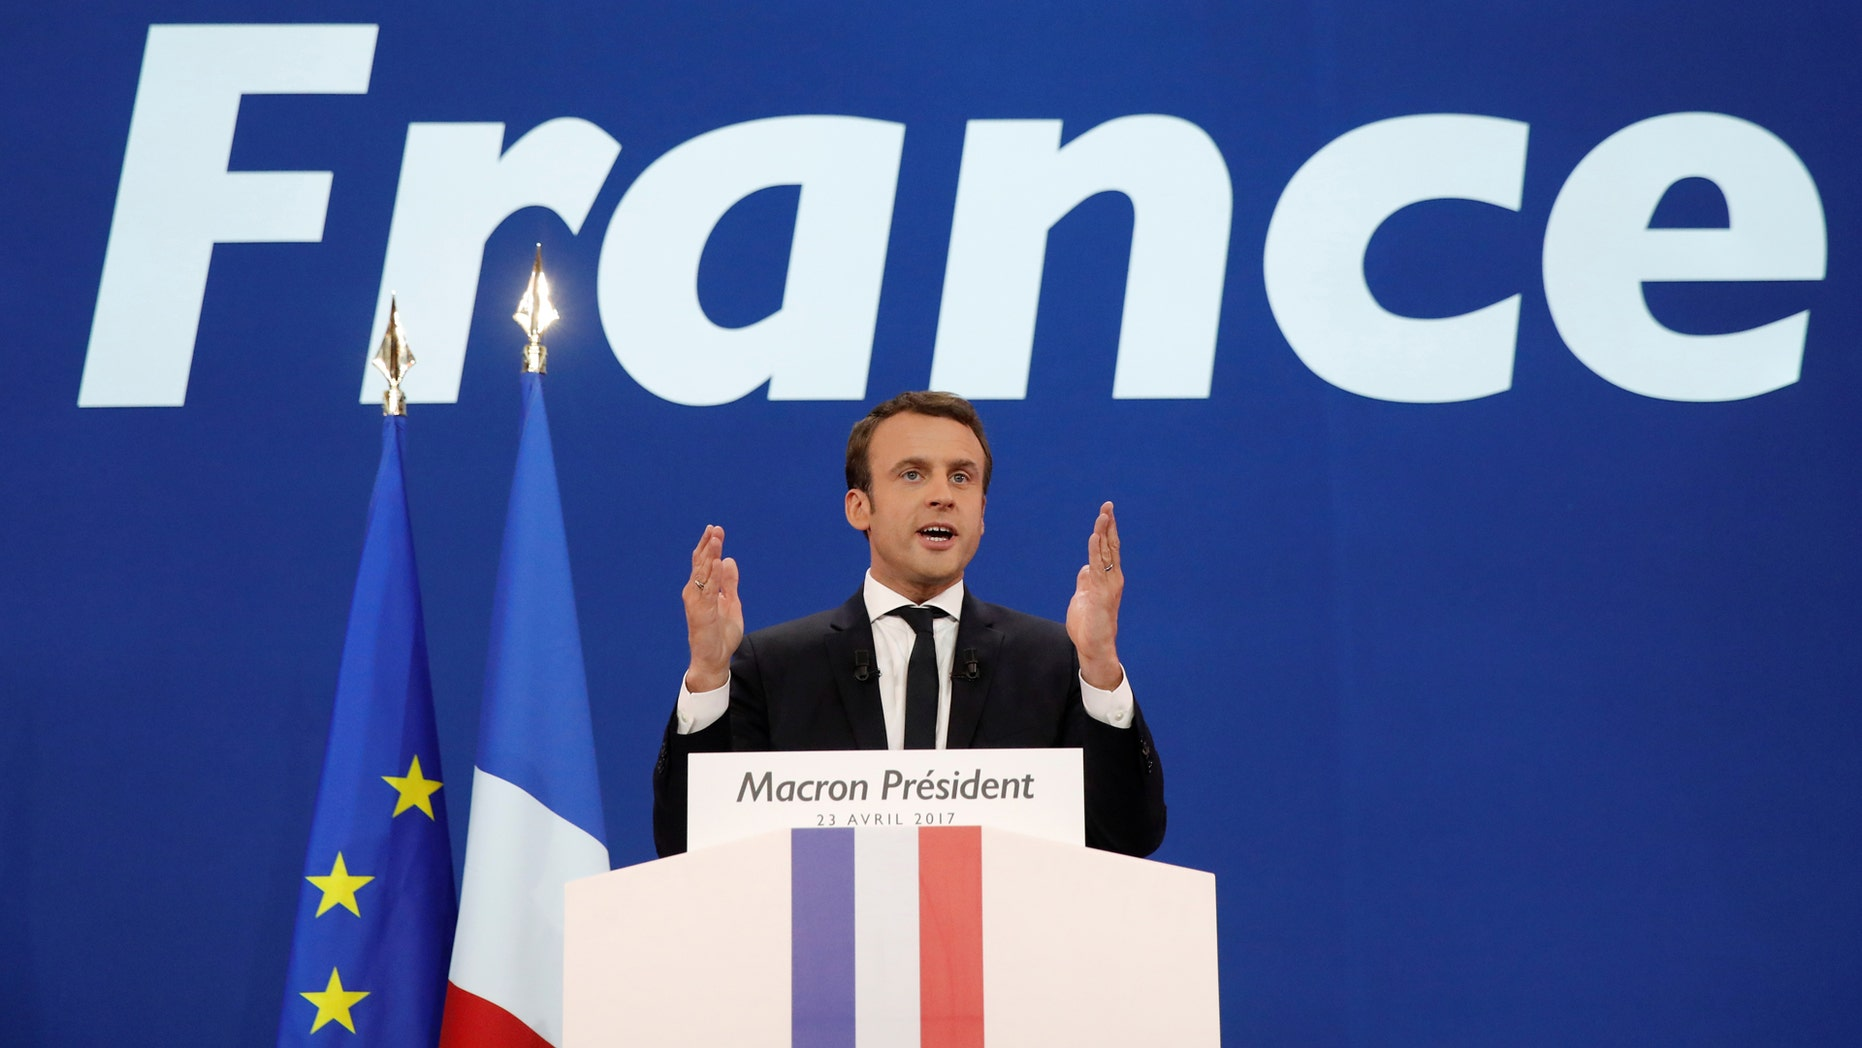 Emmanuel Macron, head of the political movement En Marche !, or Onwards !, and candidate for the 2017 French presidential election, gestures to supporters after the first round of 2017 French presidential election in Paris, France, April 23, 2017. (REUTERS/Benoit Tessier)